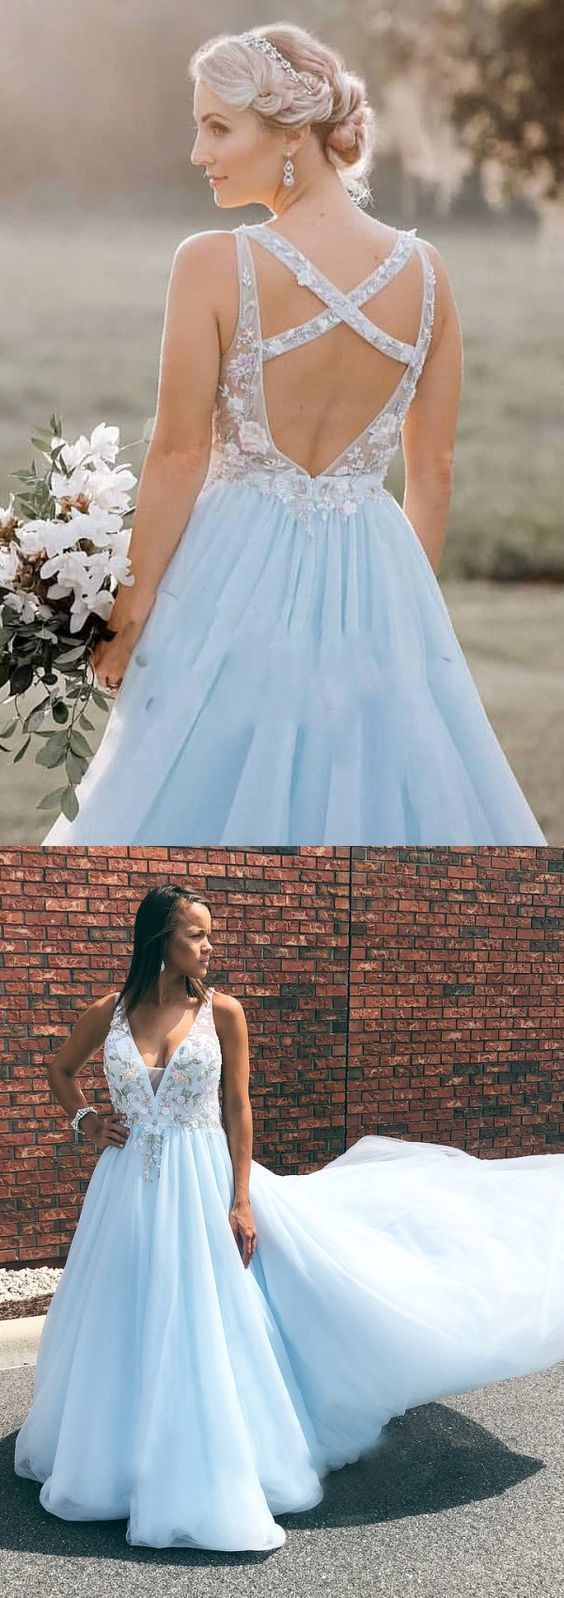 Cute Prom Dress, Open Back Prom Dresses with Straps A Line V-neck Long Embroidery Sky Blue Prom Dress,2085